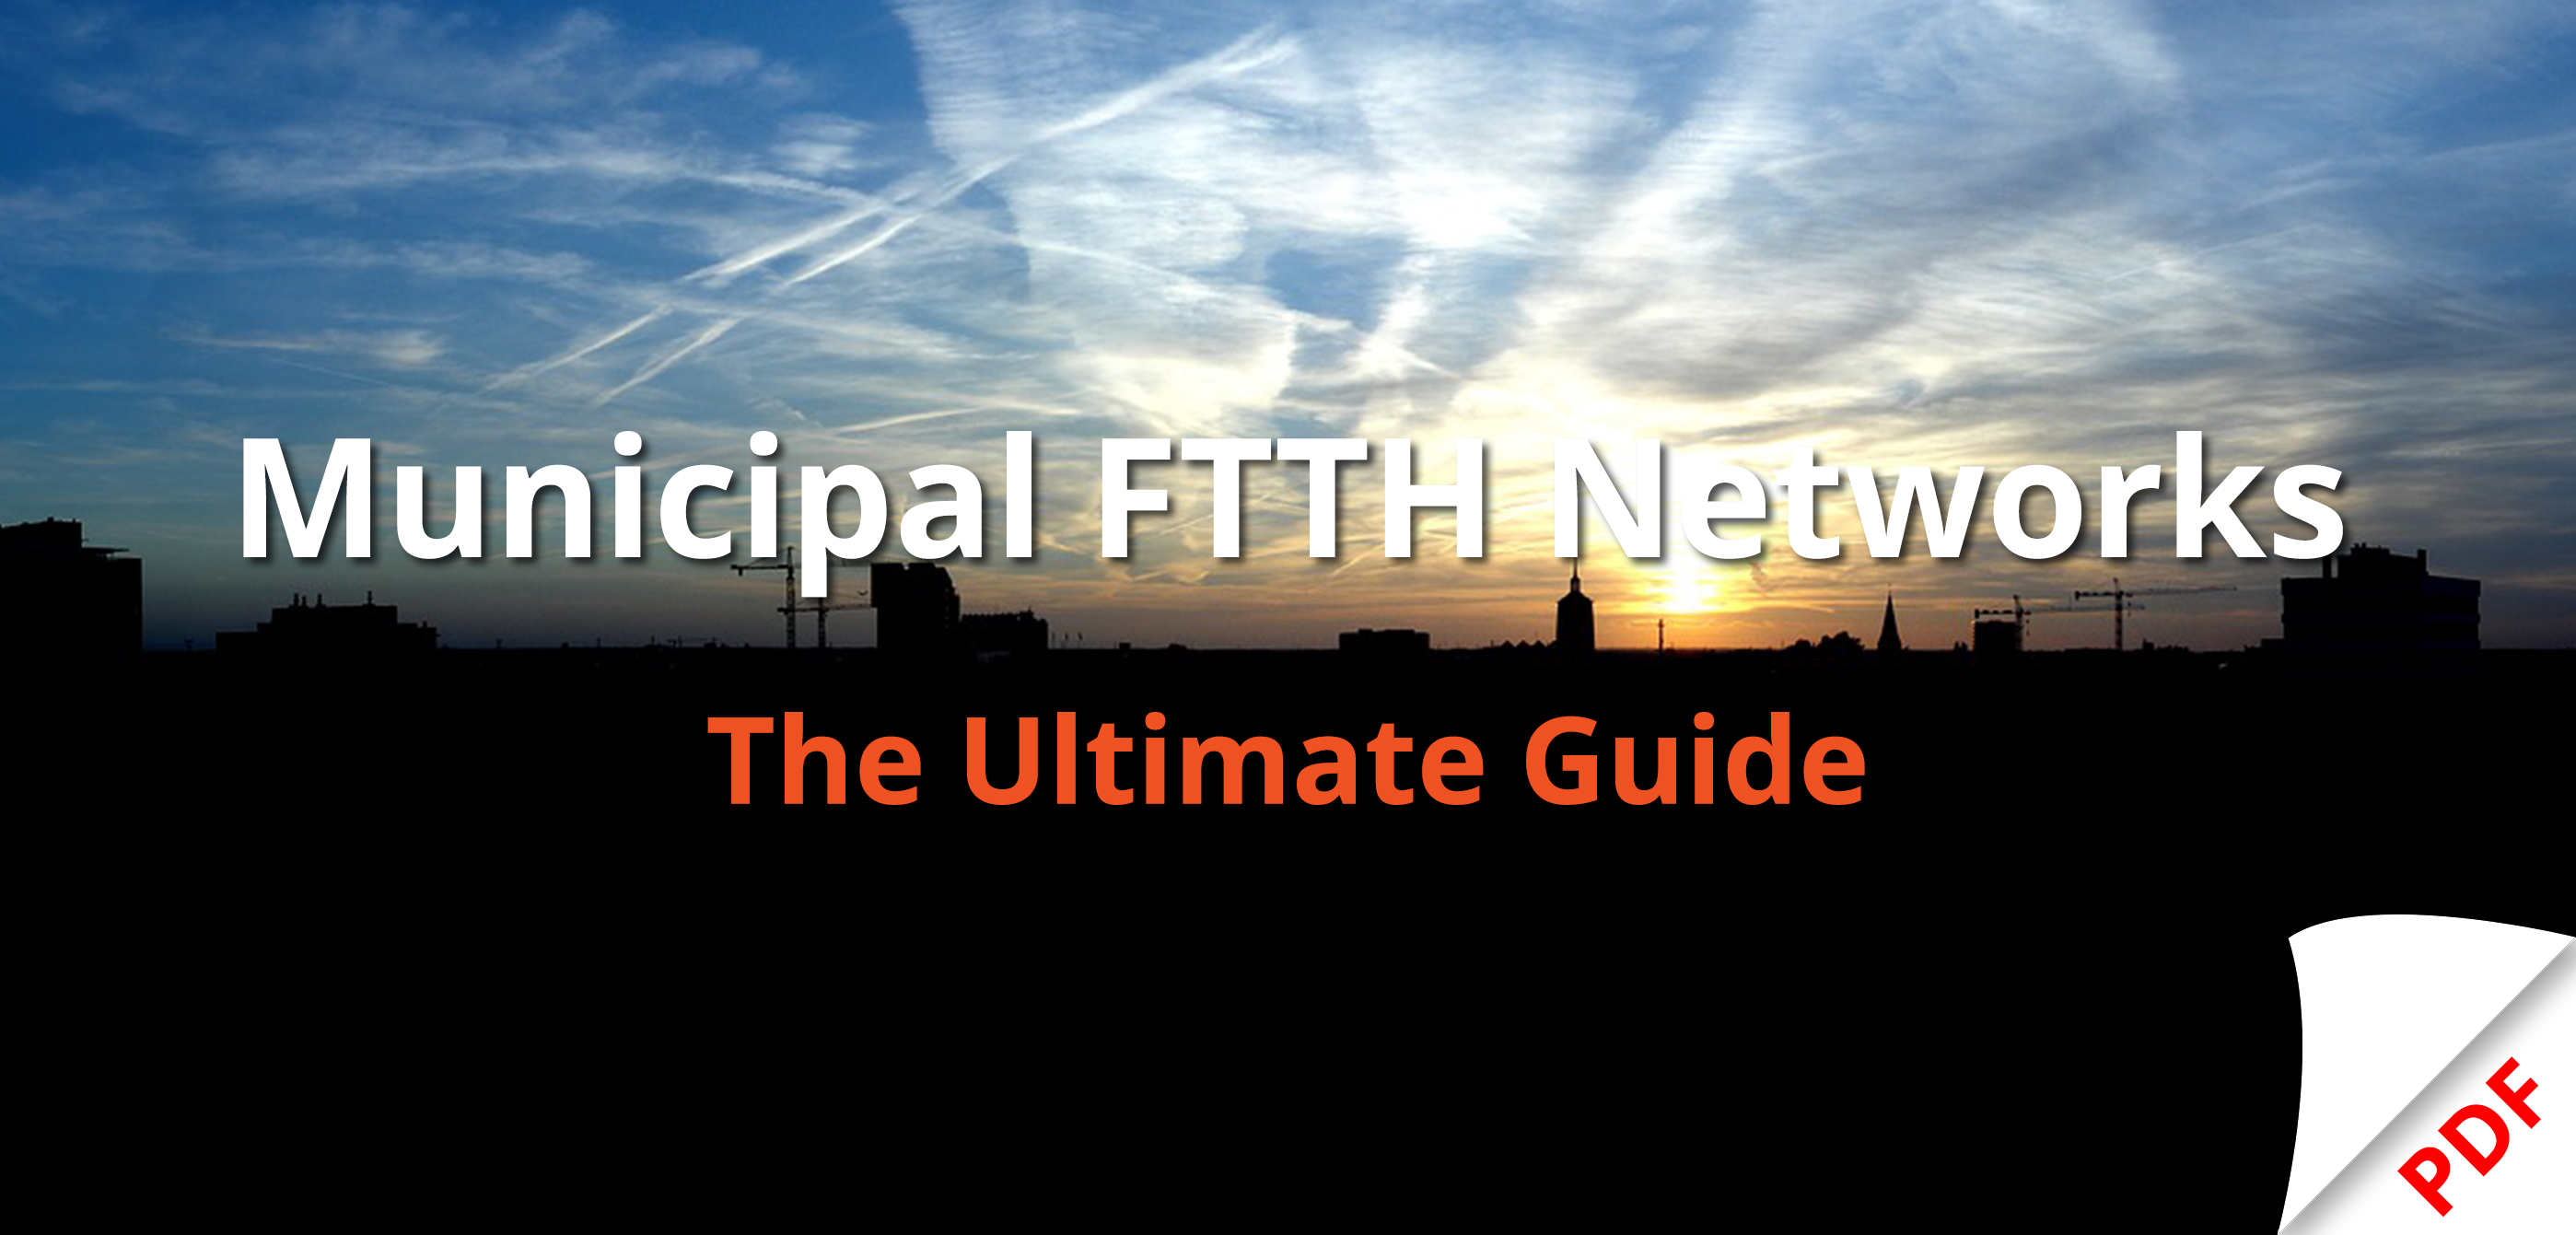 Download - Municipal FTTH Network - (featured image)